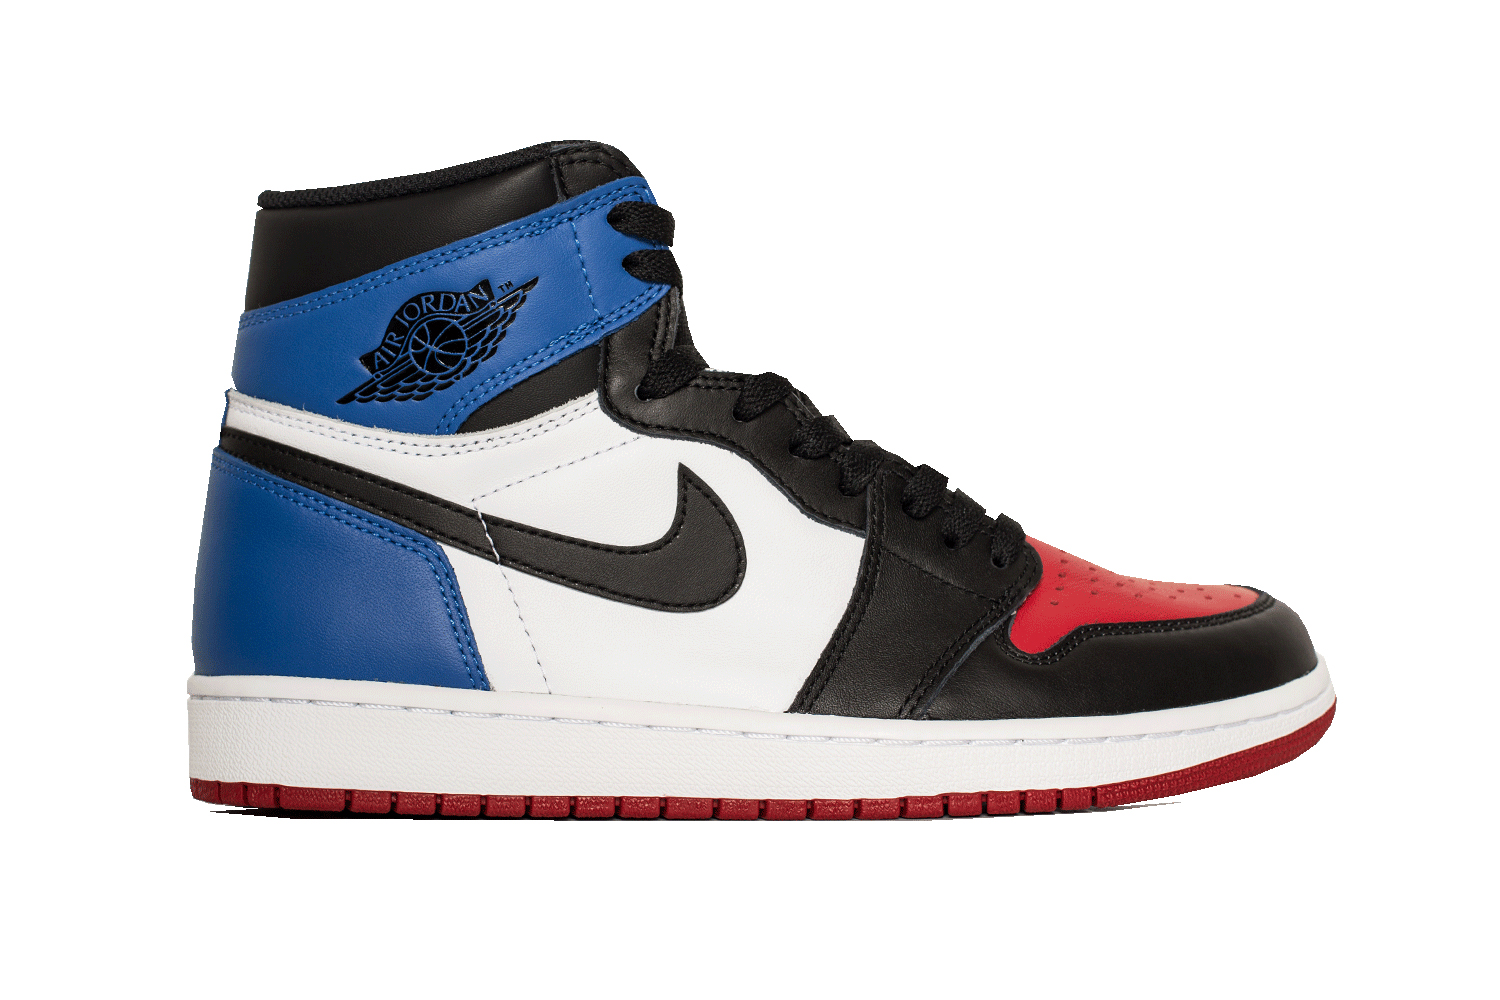 """The Air Jordan 1 """"Top Three"""" Pays Homage to the Silhouette's Most Sought After Colorways"""